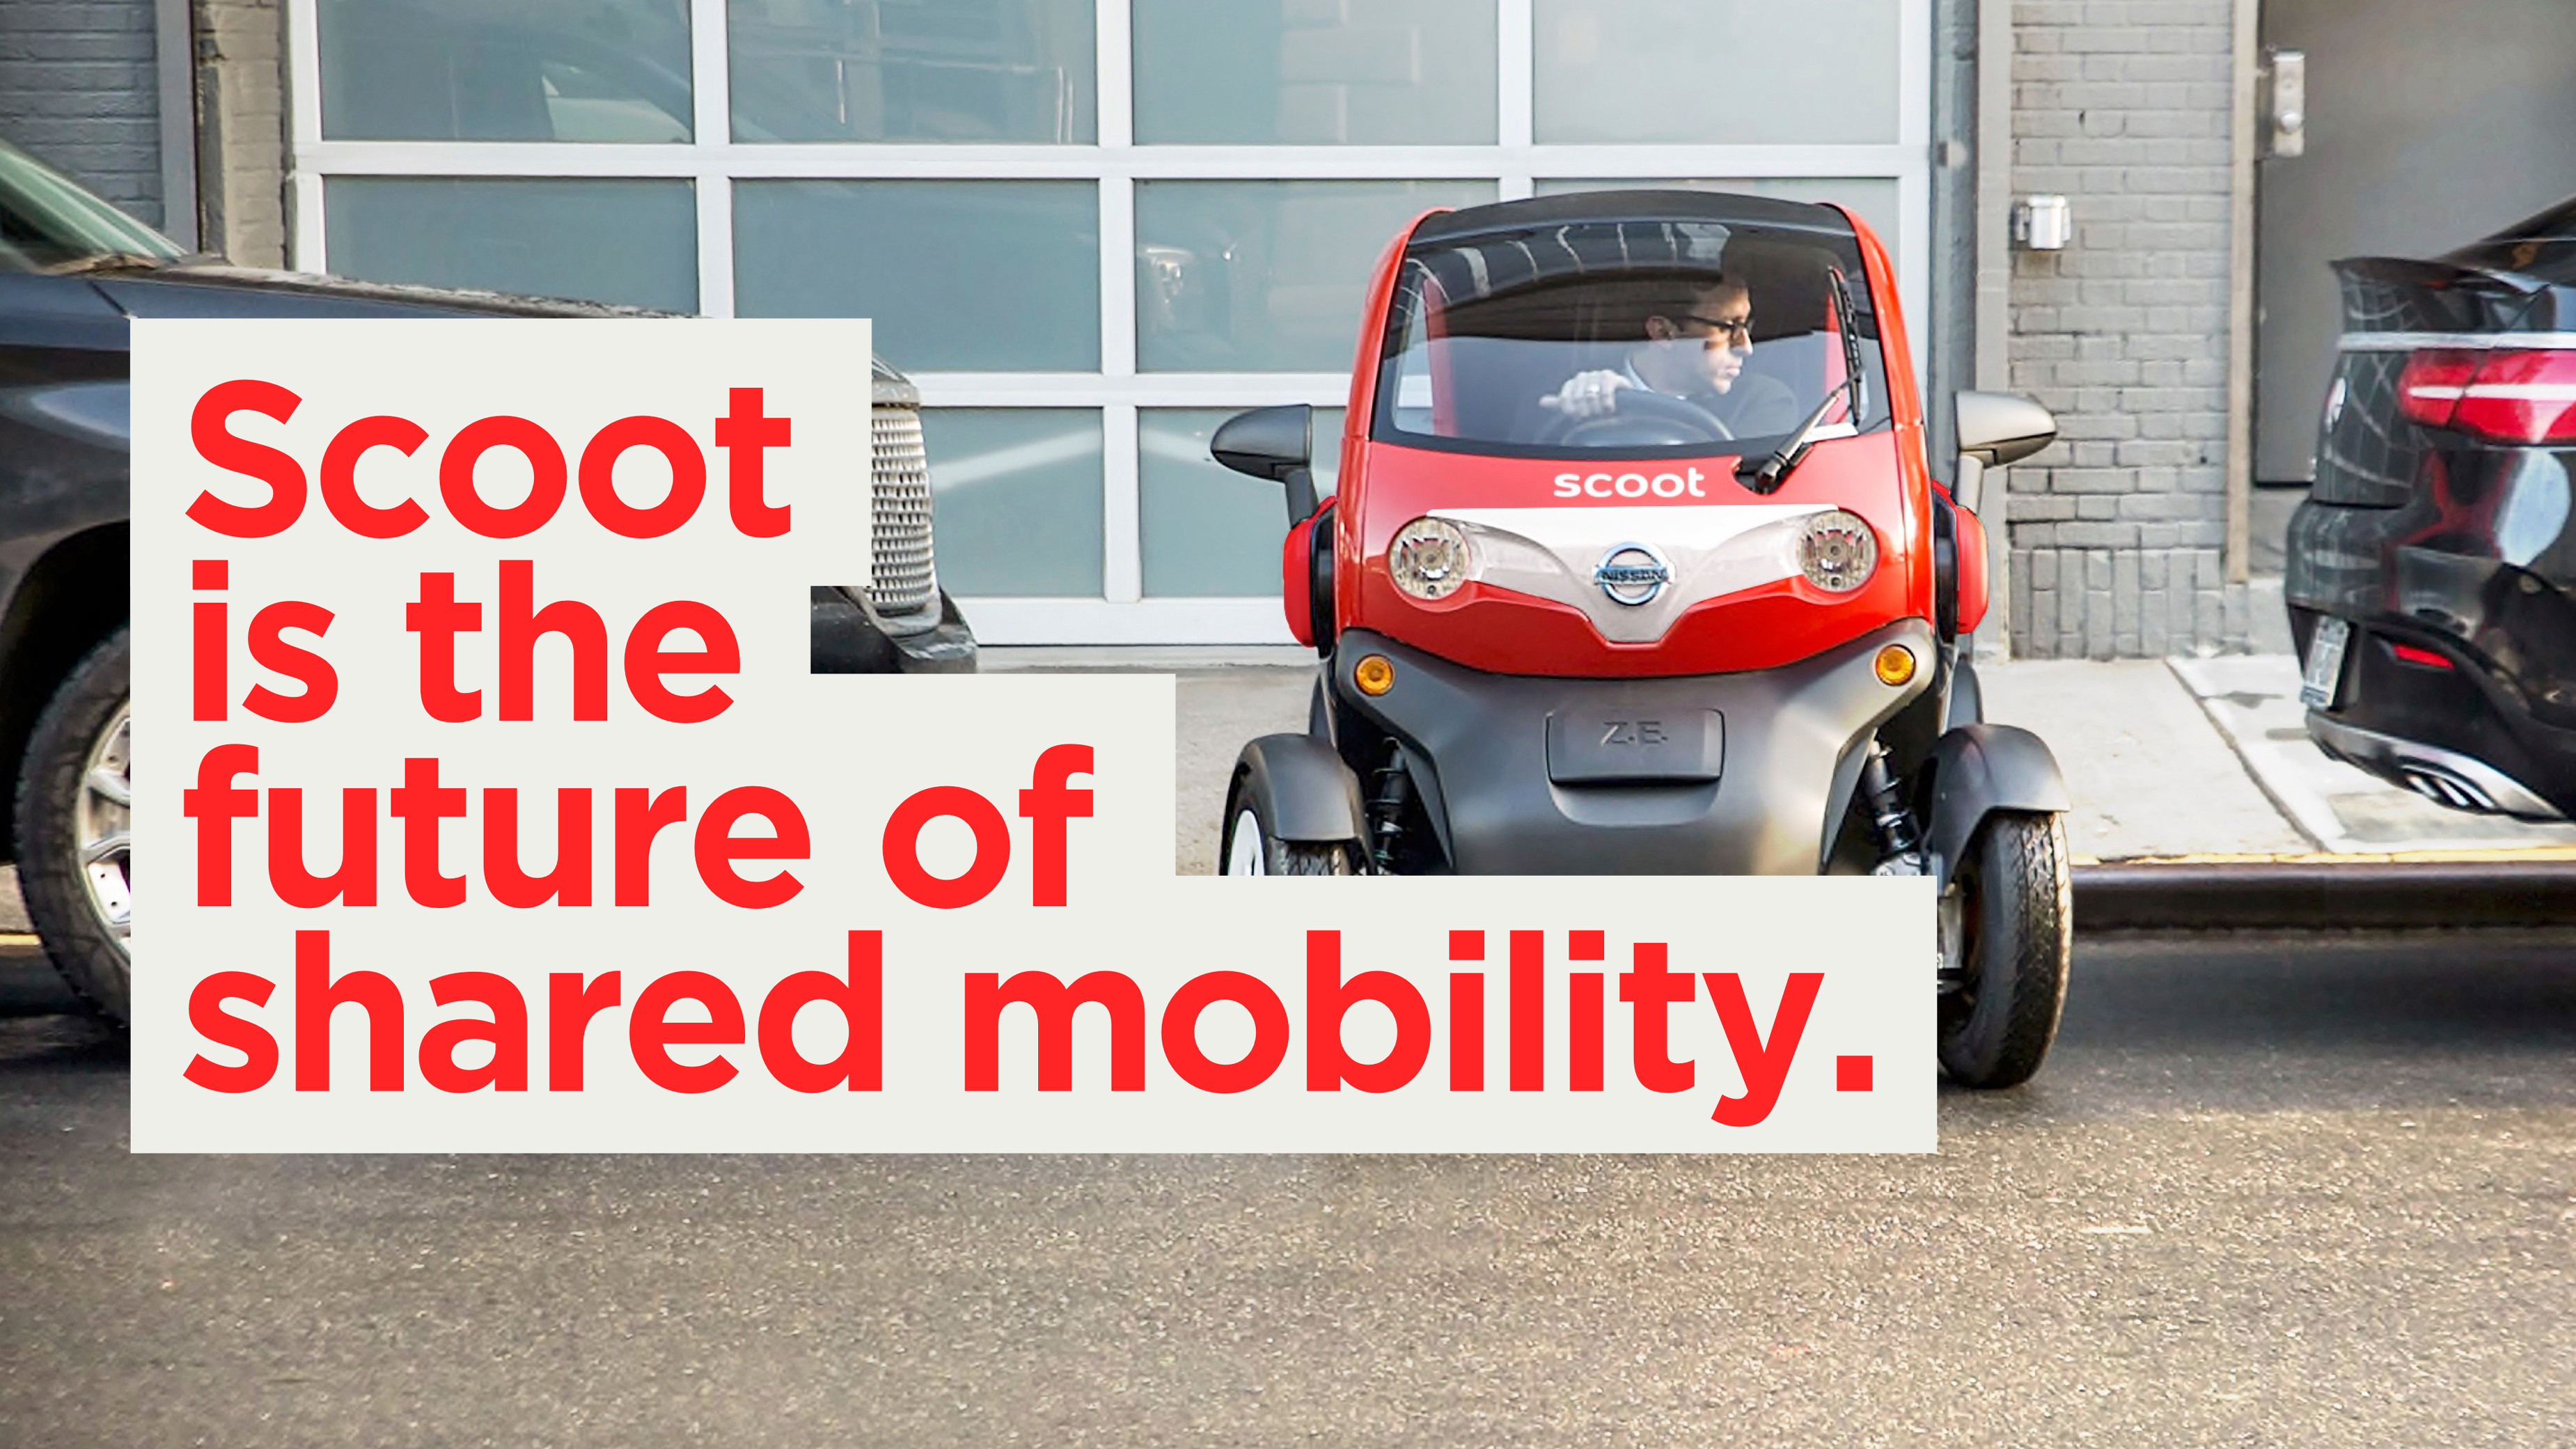 """Scoot electric vehicle being parked with typography imposed on top of it that says """"scoot is the future of shared mobility."""""""